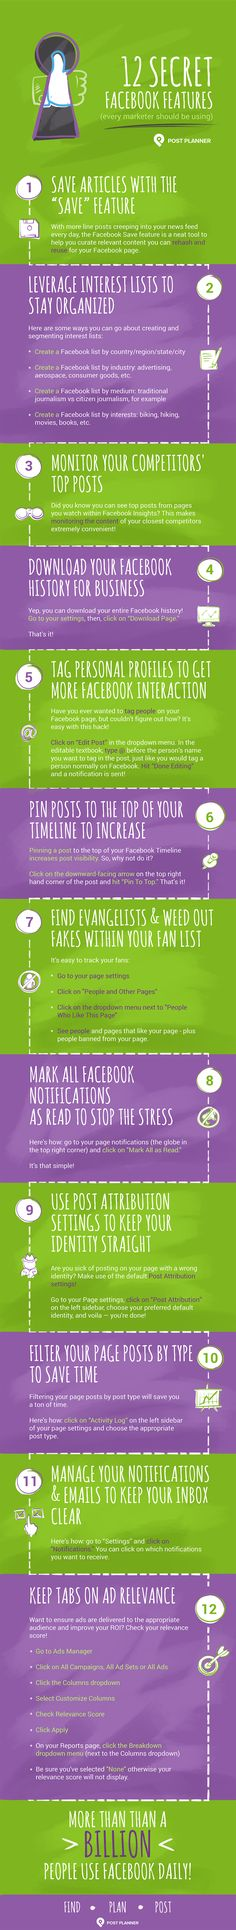 and one of them is Post Planner. Work smarter - schedule your posts. Facebook Marketing, Content Marketing, Social Media Marketing, Digital Marketing, Social Media Trends, Social Media Channels, Marketing Trends, Facebook Features, About Facebook